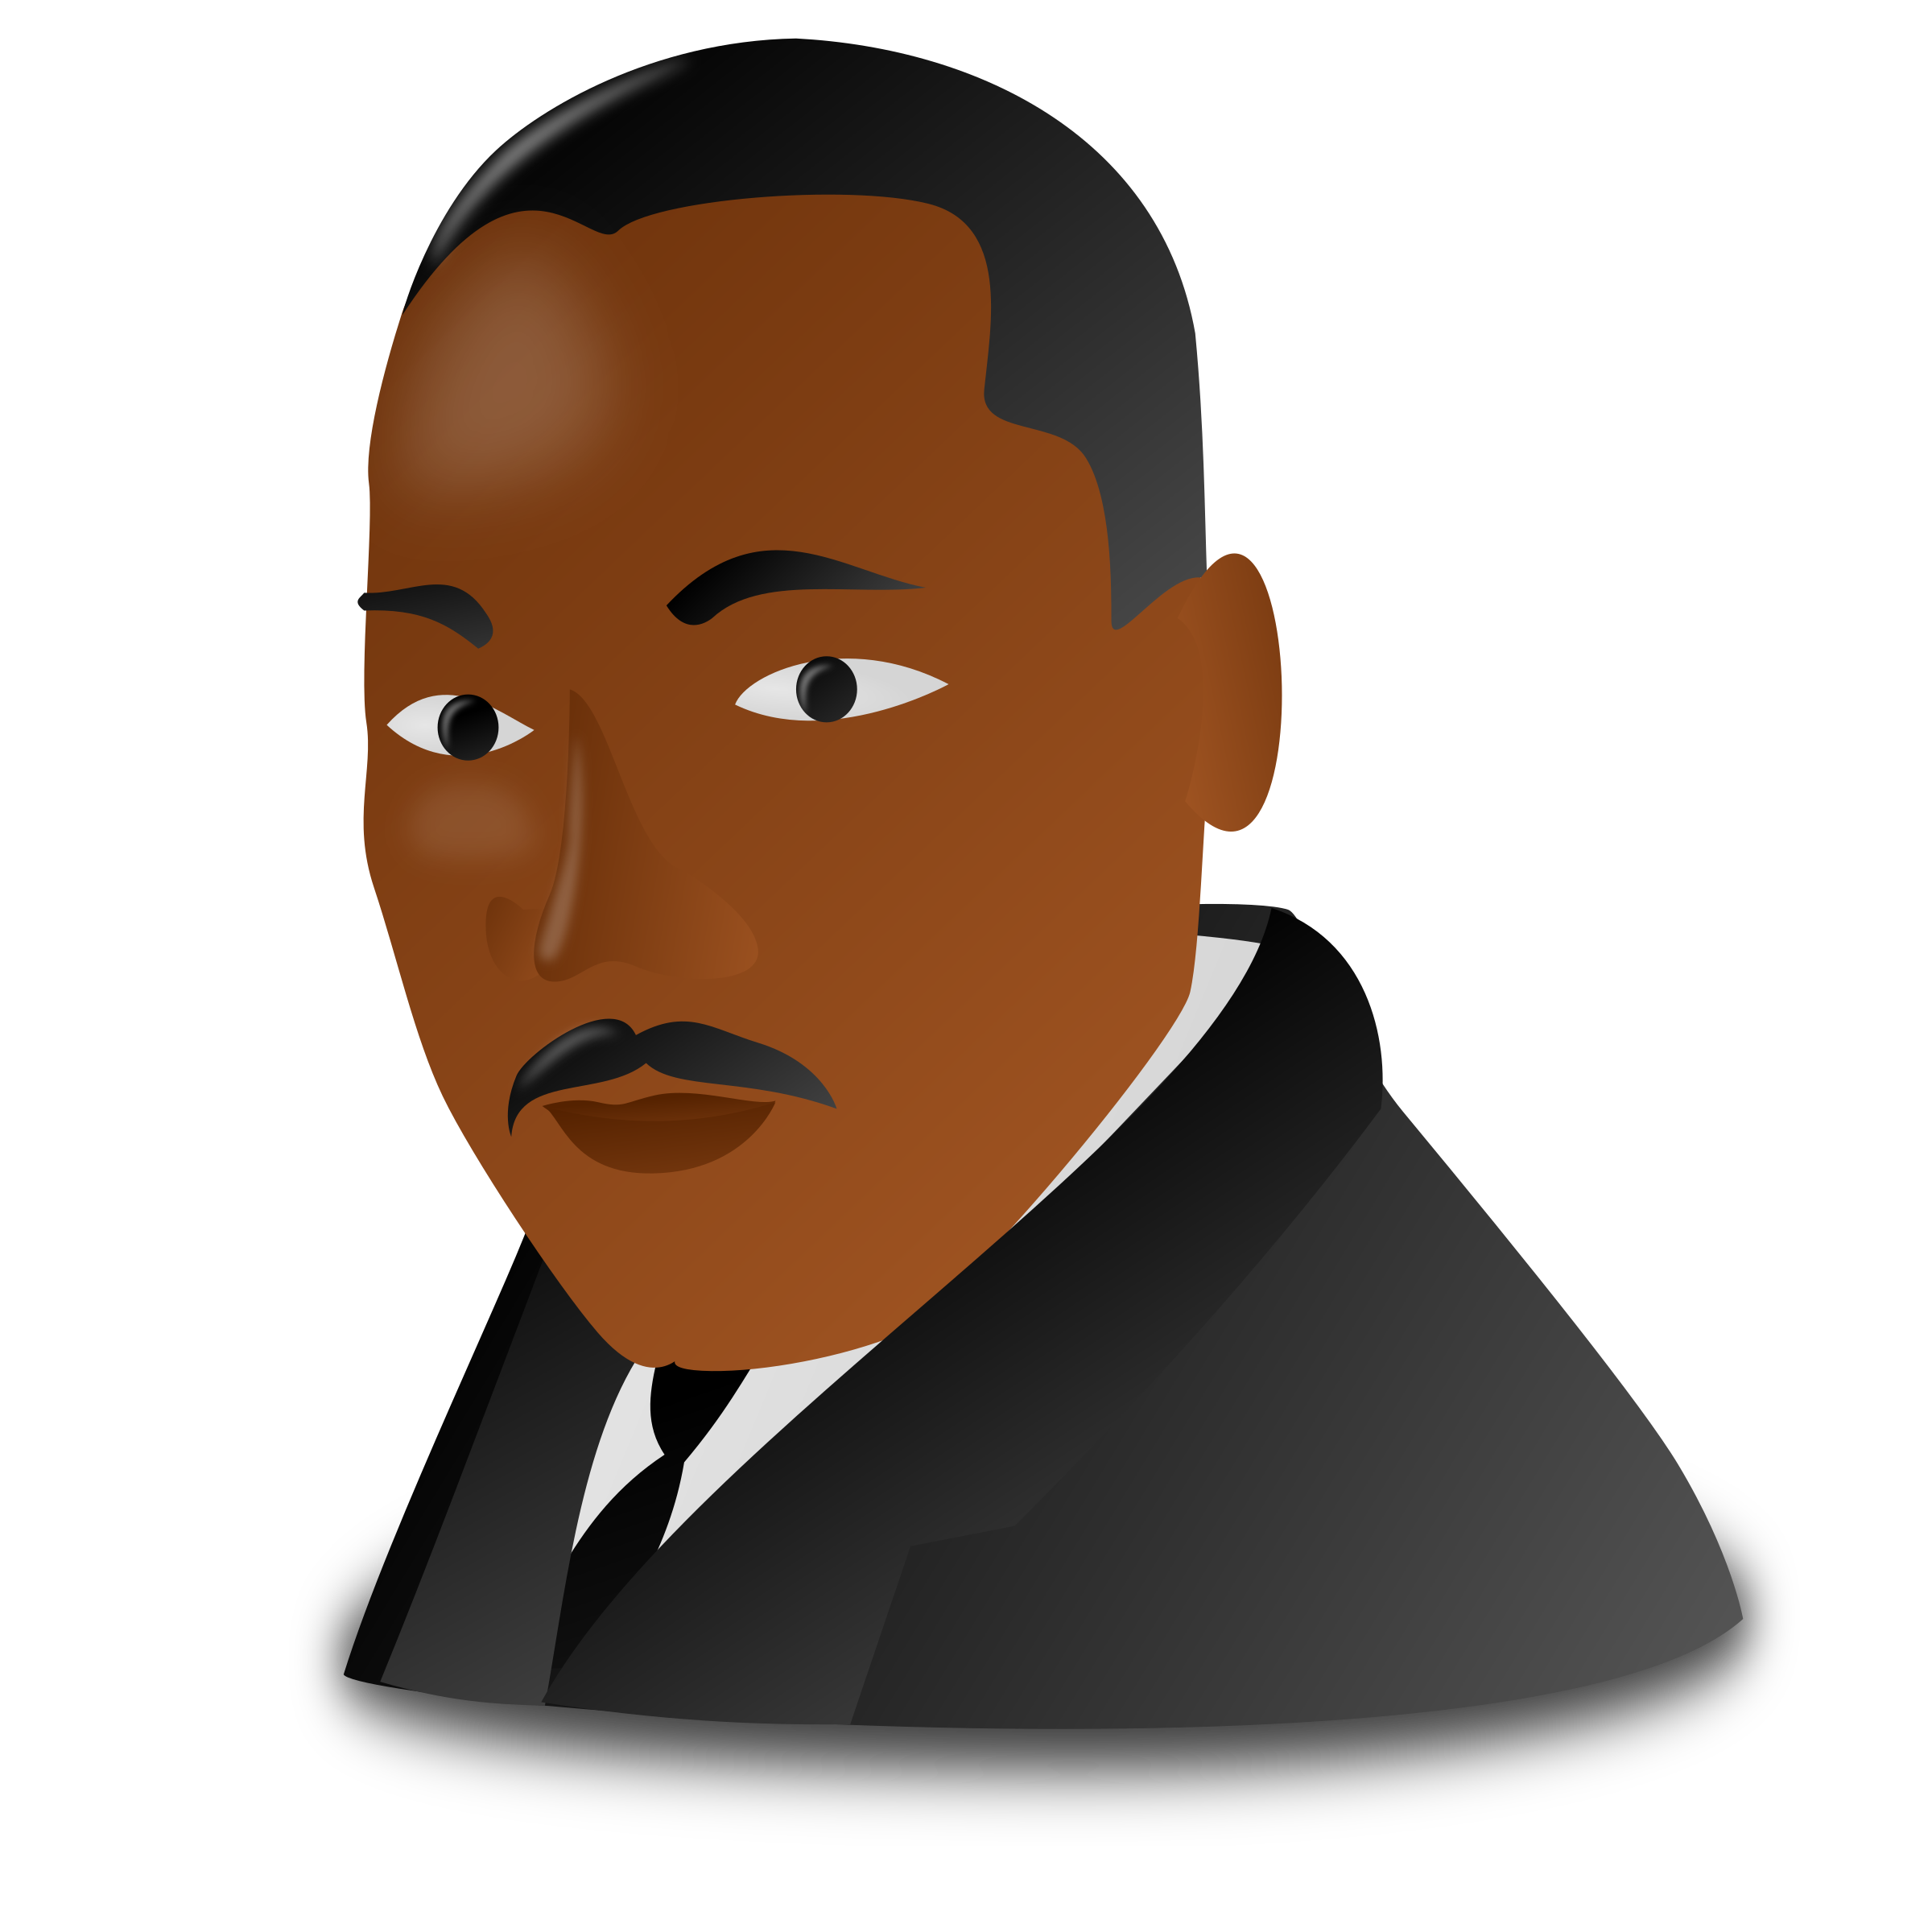 clip art Martin luther jr clipart. King day icon big